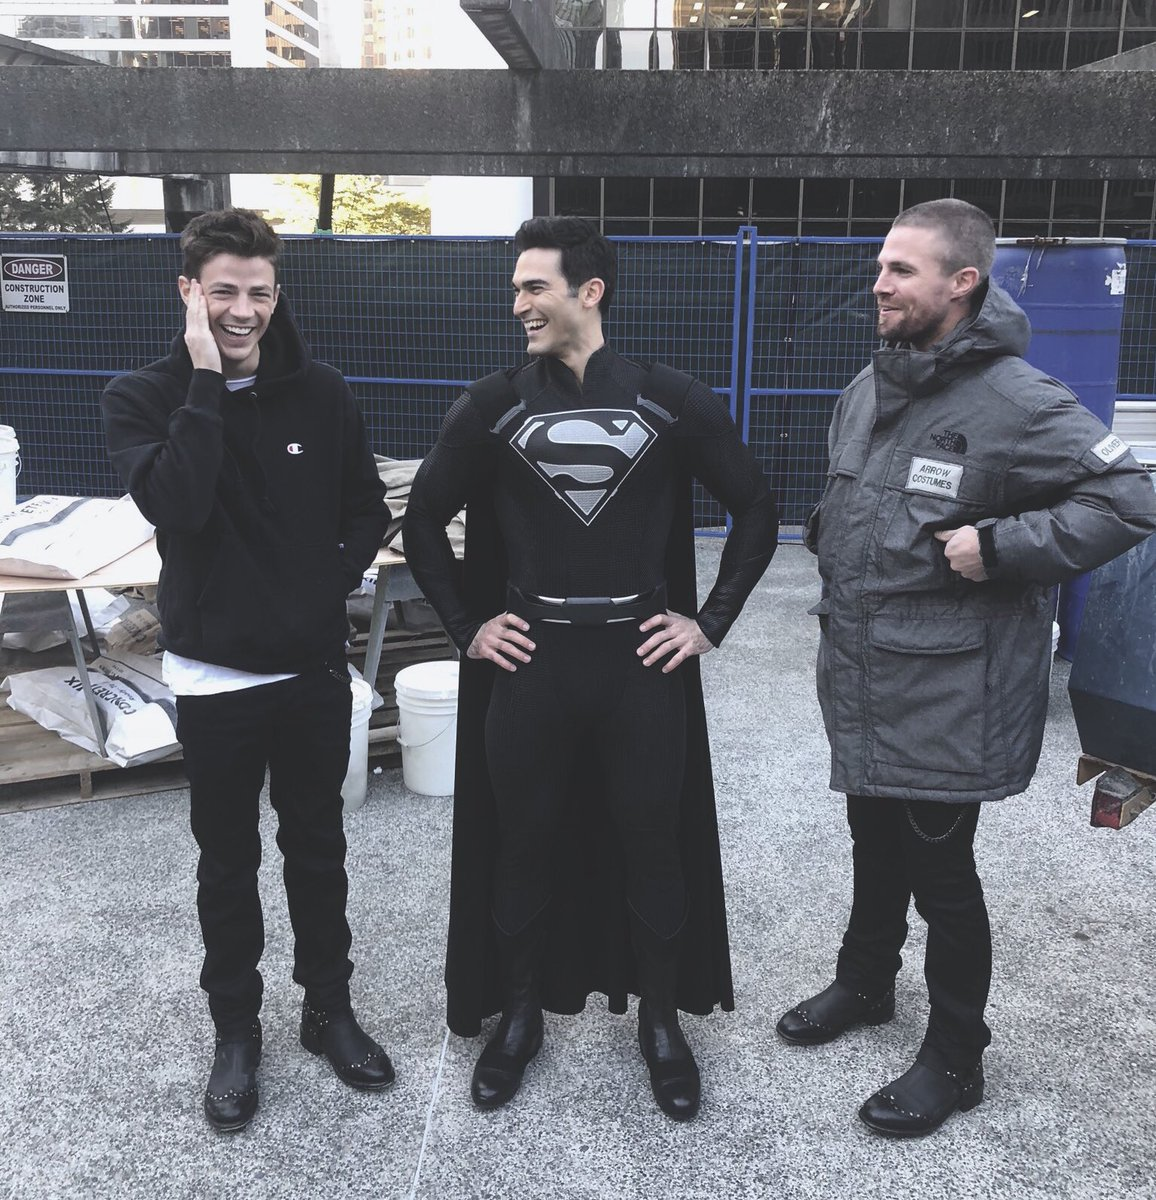 cw is actually giving us black suit superman wtfff dceu PLEASE take notes freaks